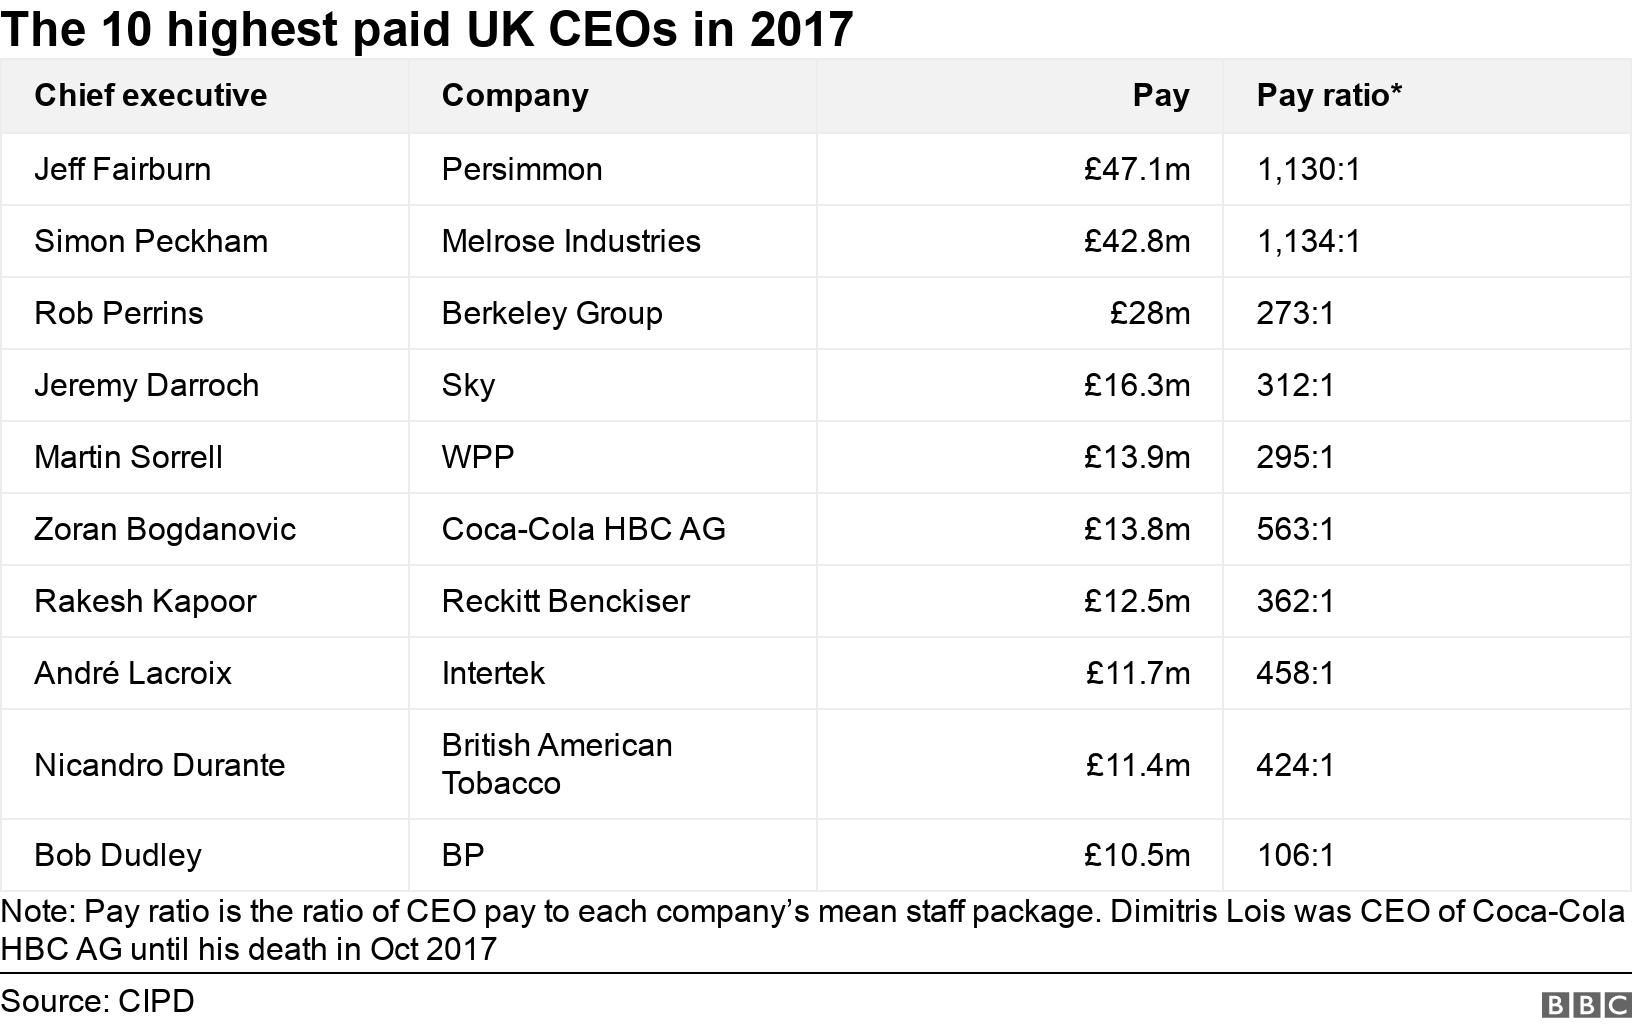 The 10 highest paid UK CEOs in 2017. .  Note: Pay ratio is the ratio of CEO pay to each company's mean staff package. Dimitris Lois was CEO of Coca-Cola HBC AG until his death in Oct 2017.